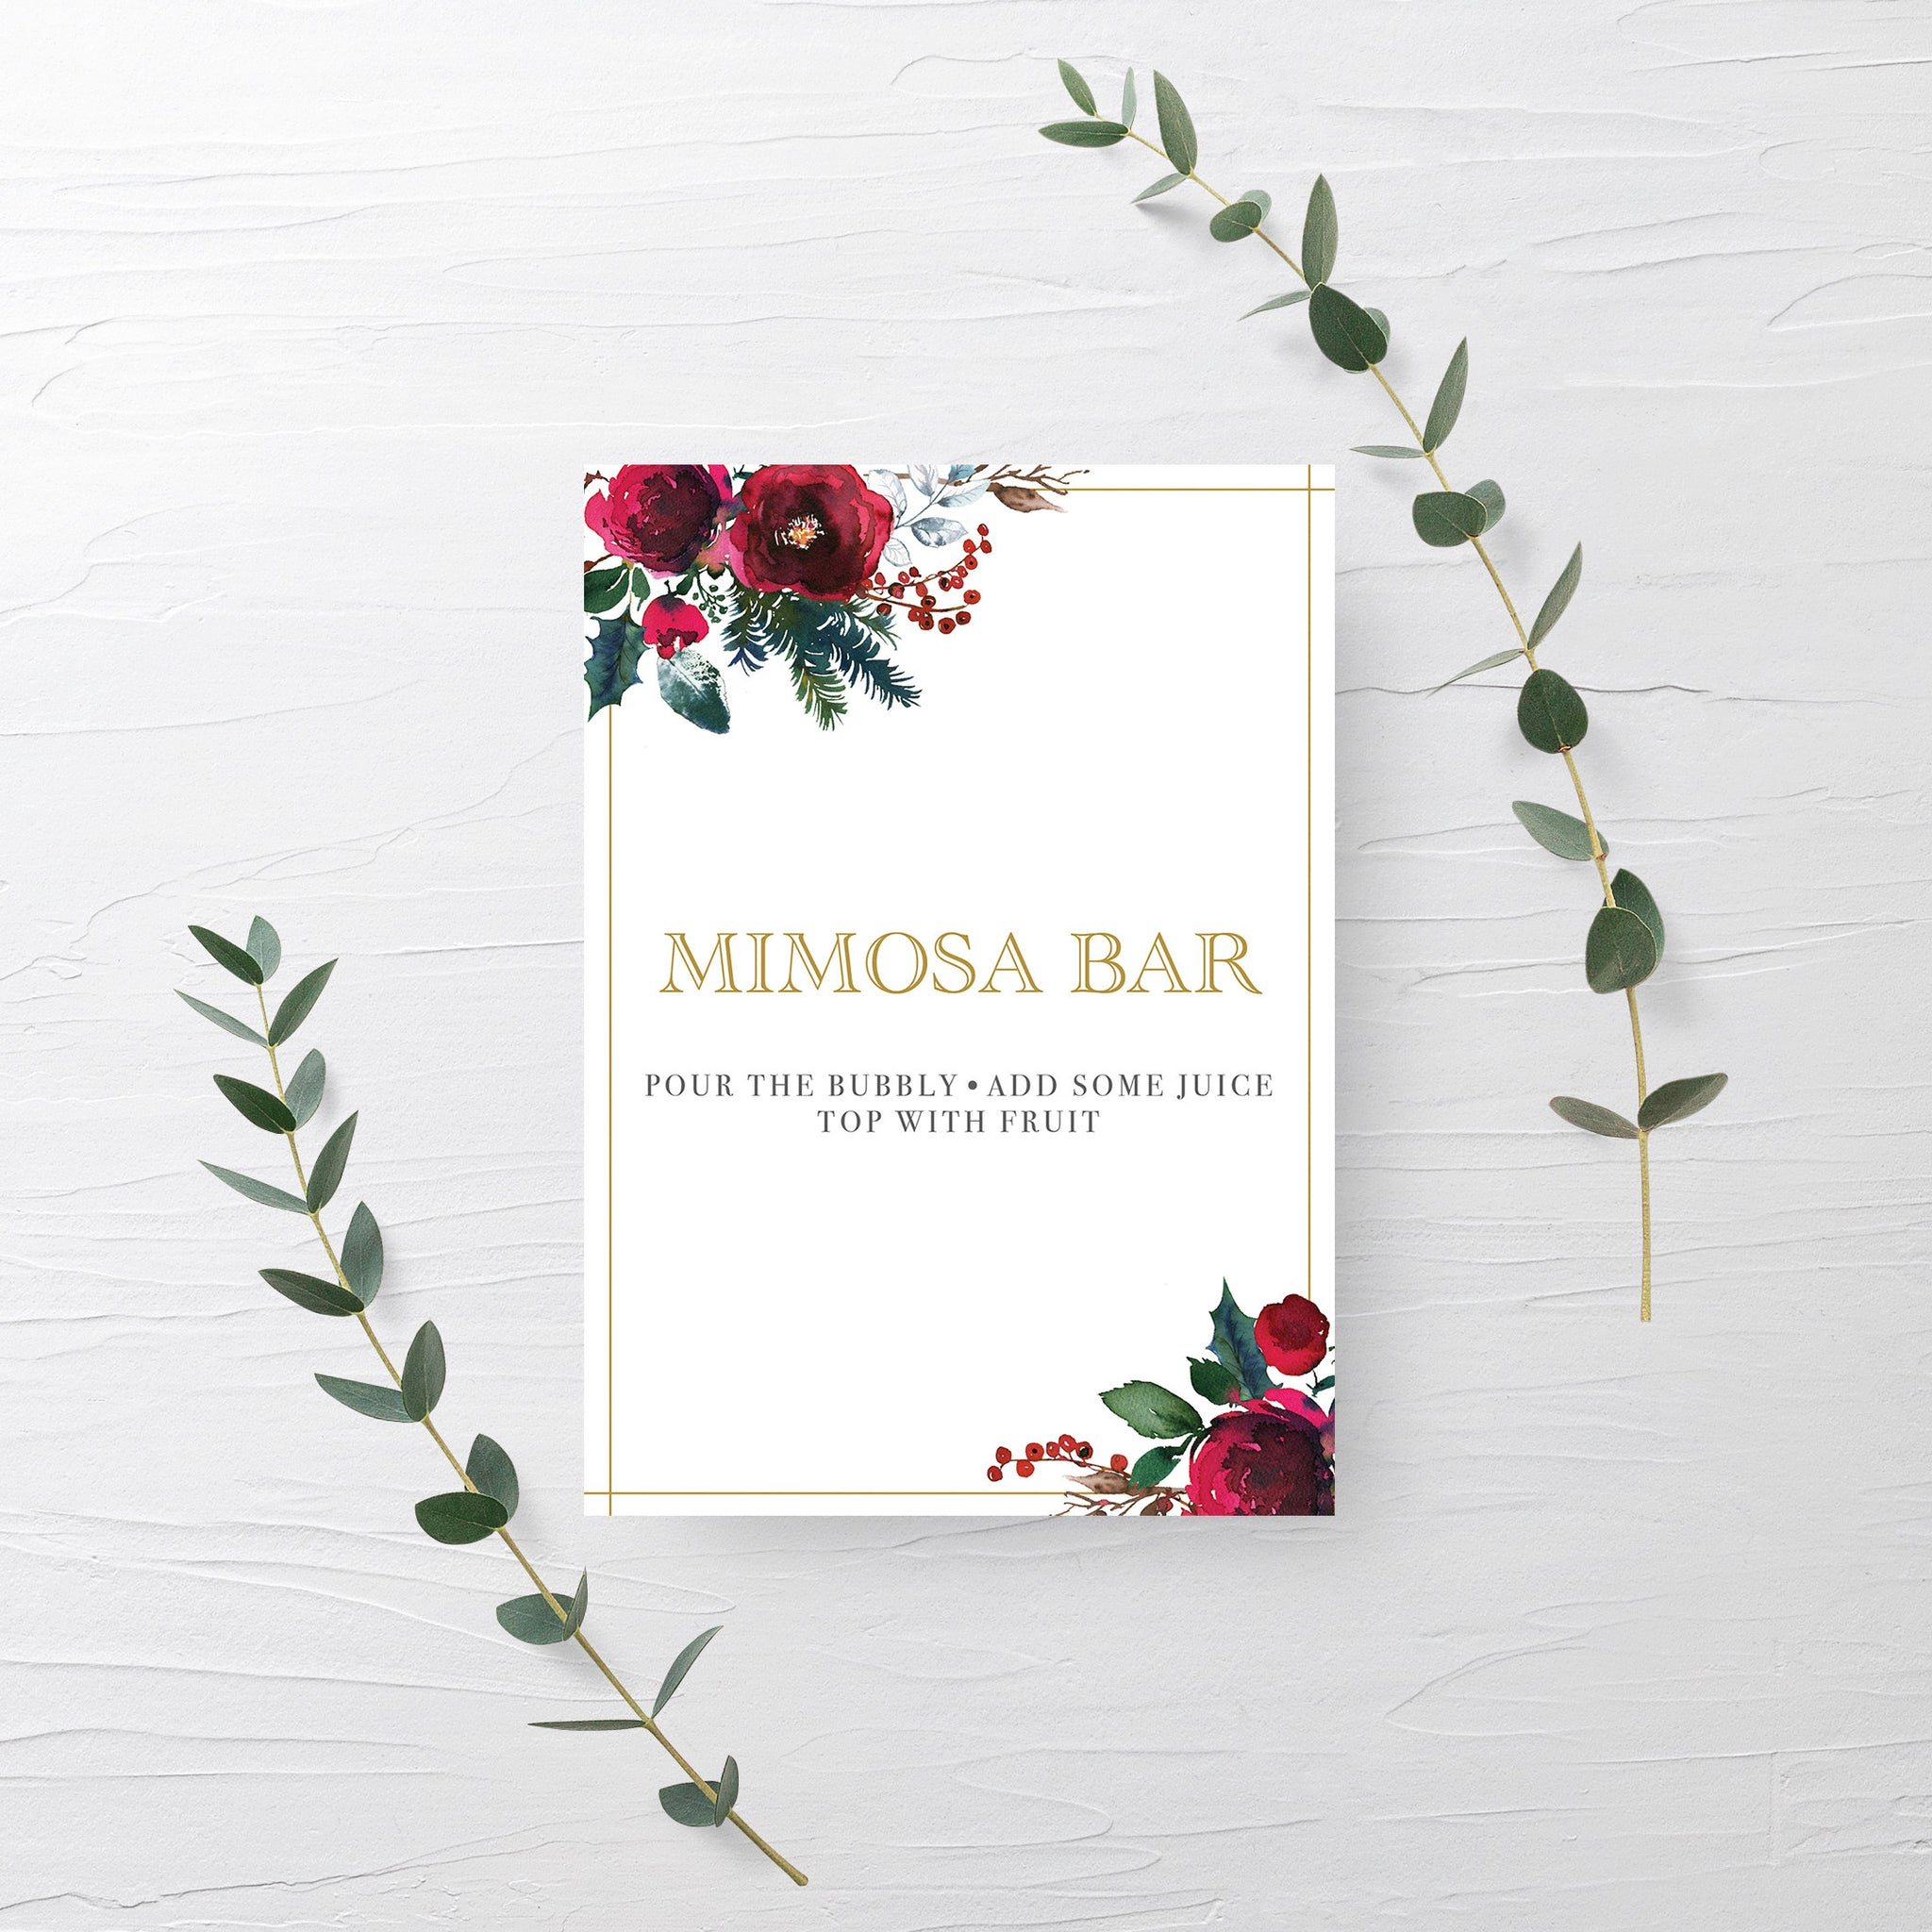 Christmas Party Mimosa Bar Sign, Christmas Brunch Decorations, Christmas Bridal Shower Mimosa Bar Sign Printable, INSTANT DOWNLOAD - CG100 - @PlumPolkaDot